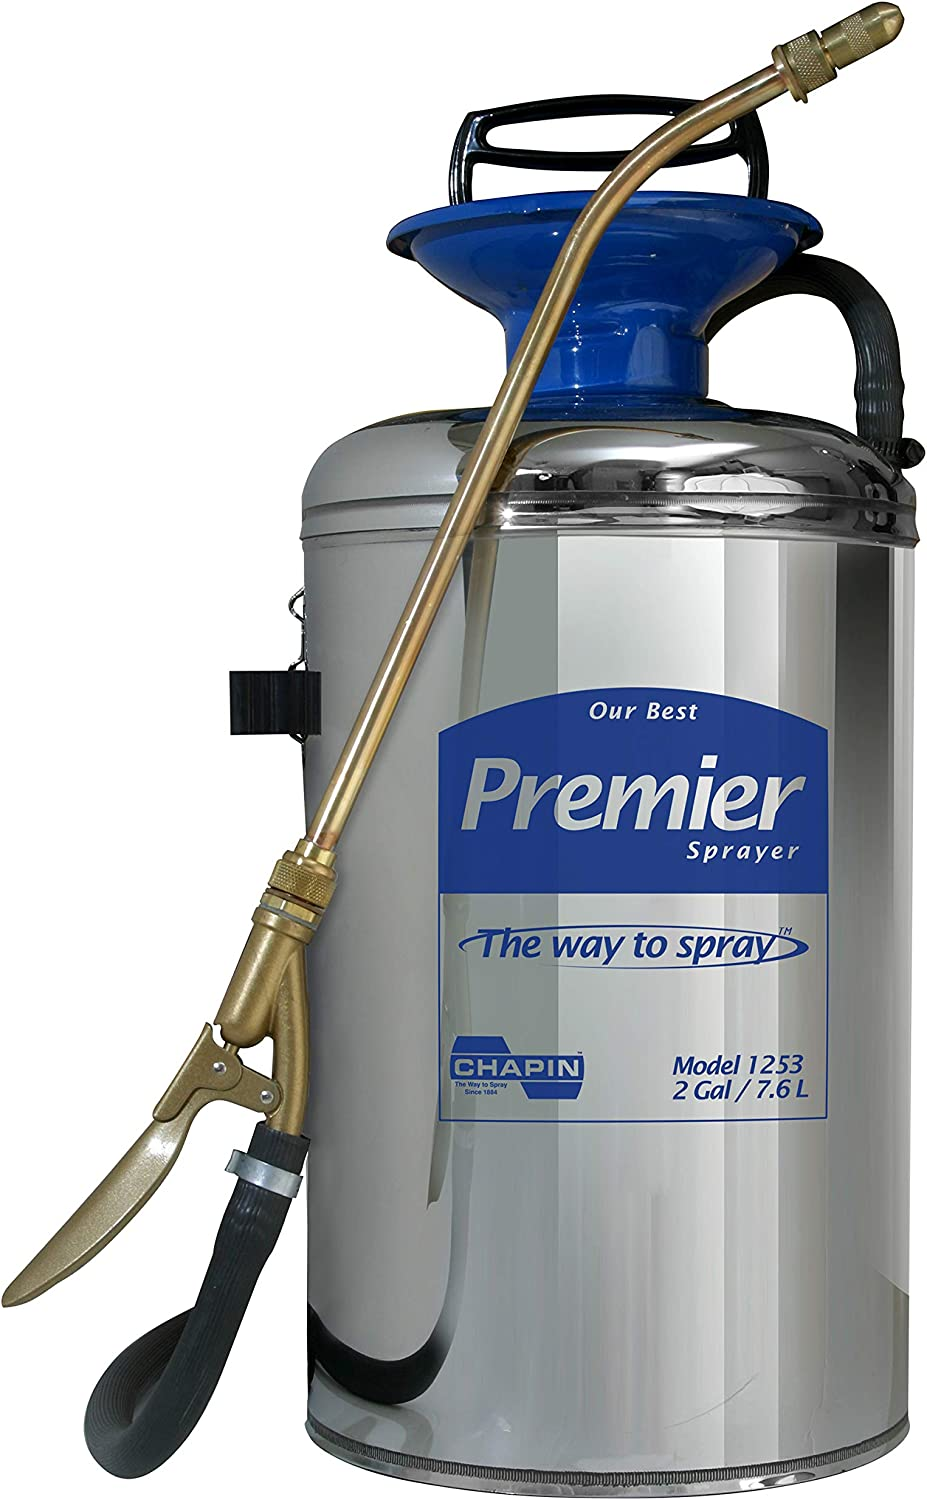 Chapin International Chapin 1253 2-Gallon Premier Series Pro Fertilizer, Herbicides and Pesticides Stainless Steel Garden Sprayer